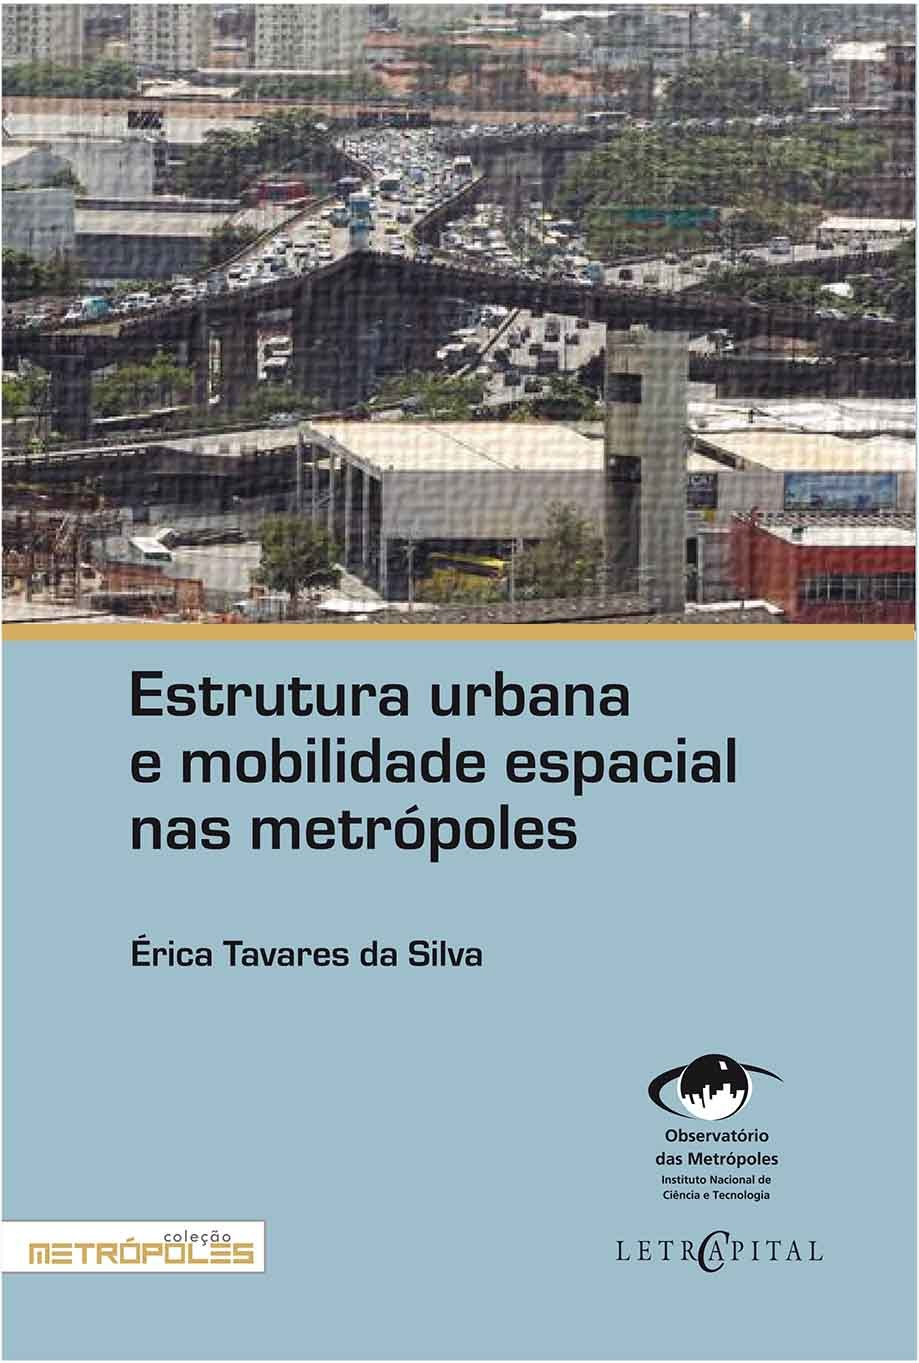 Estrutura urbana e mobilidade espacial nas metrópoles